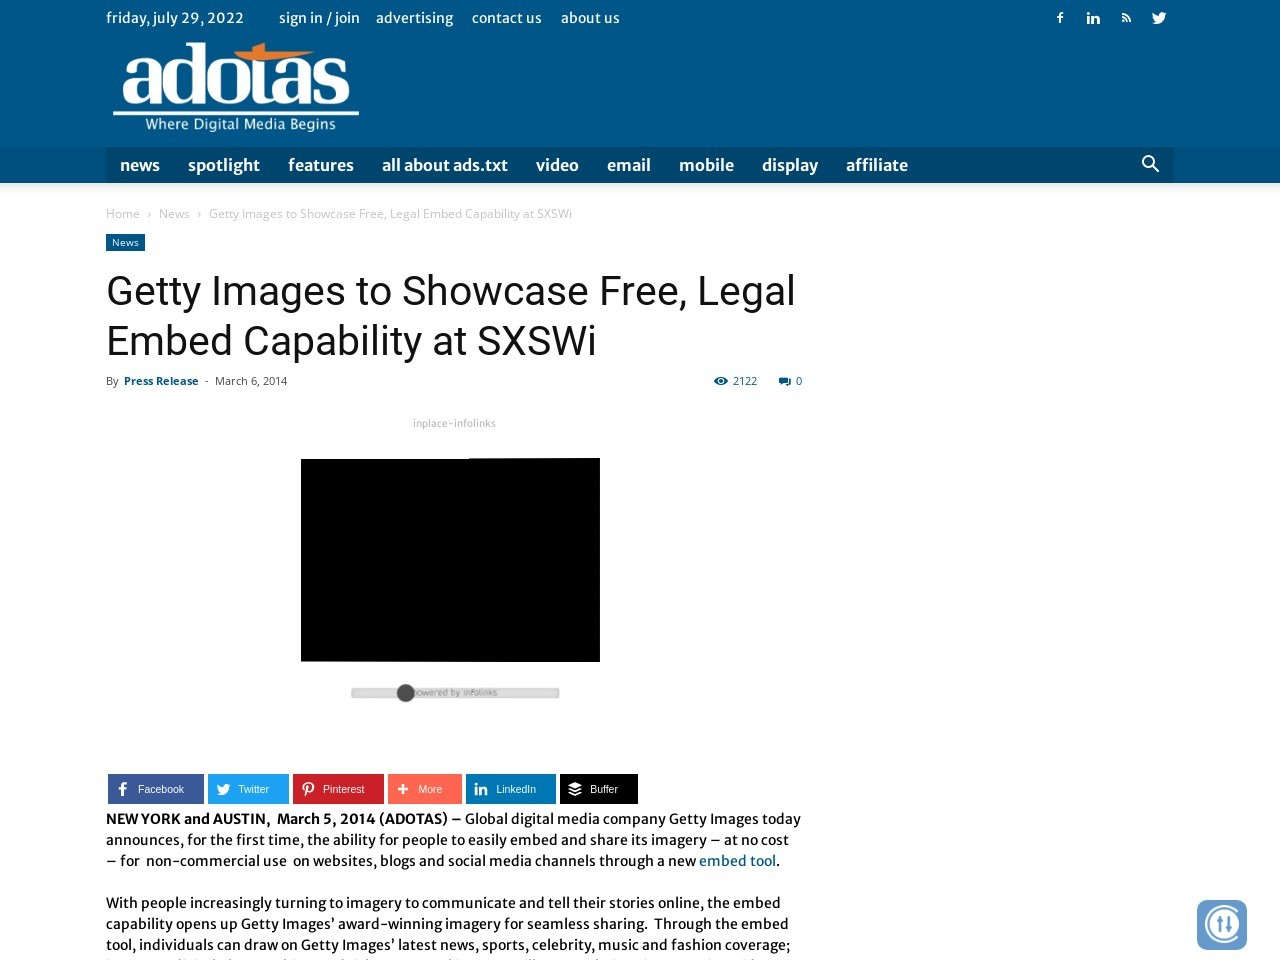 Getty Images to Showcase Free, Legal Embed Capability at SXSWi